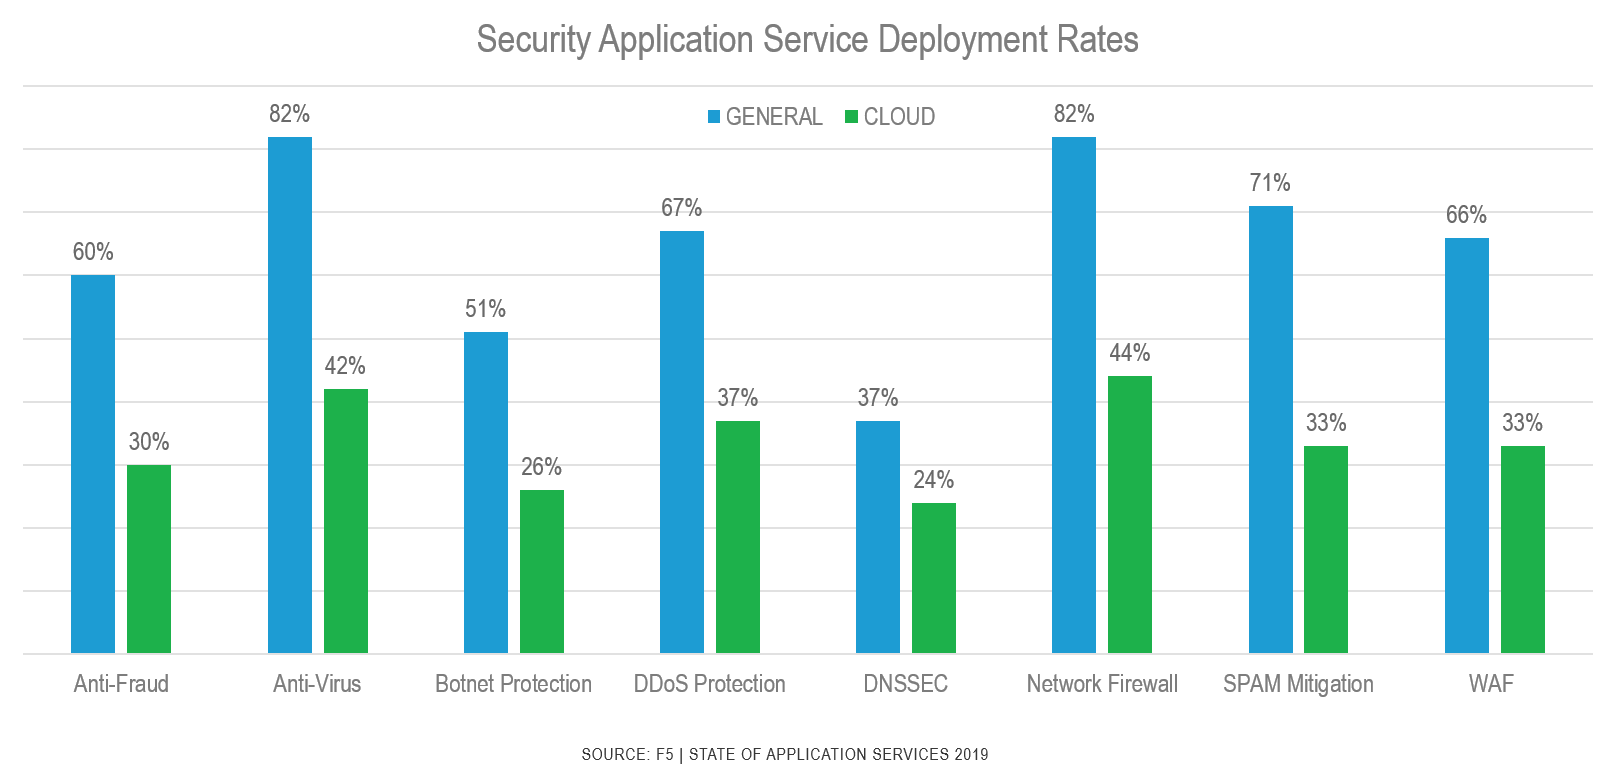 Security application service deployment rates